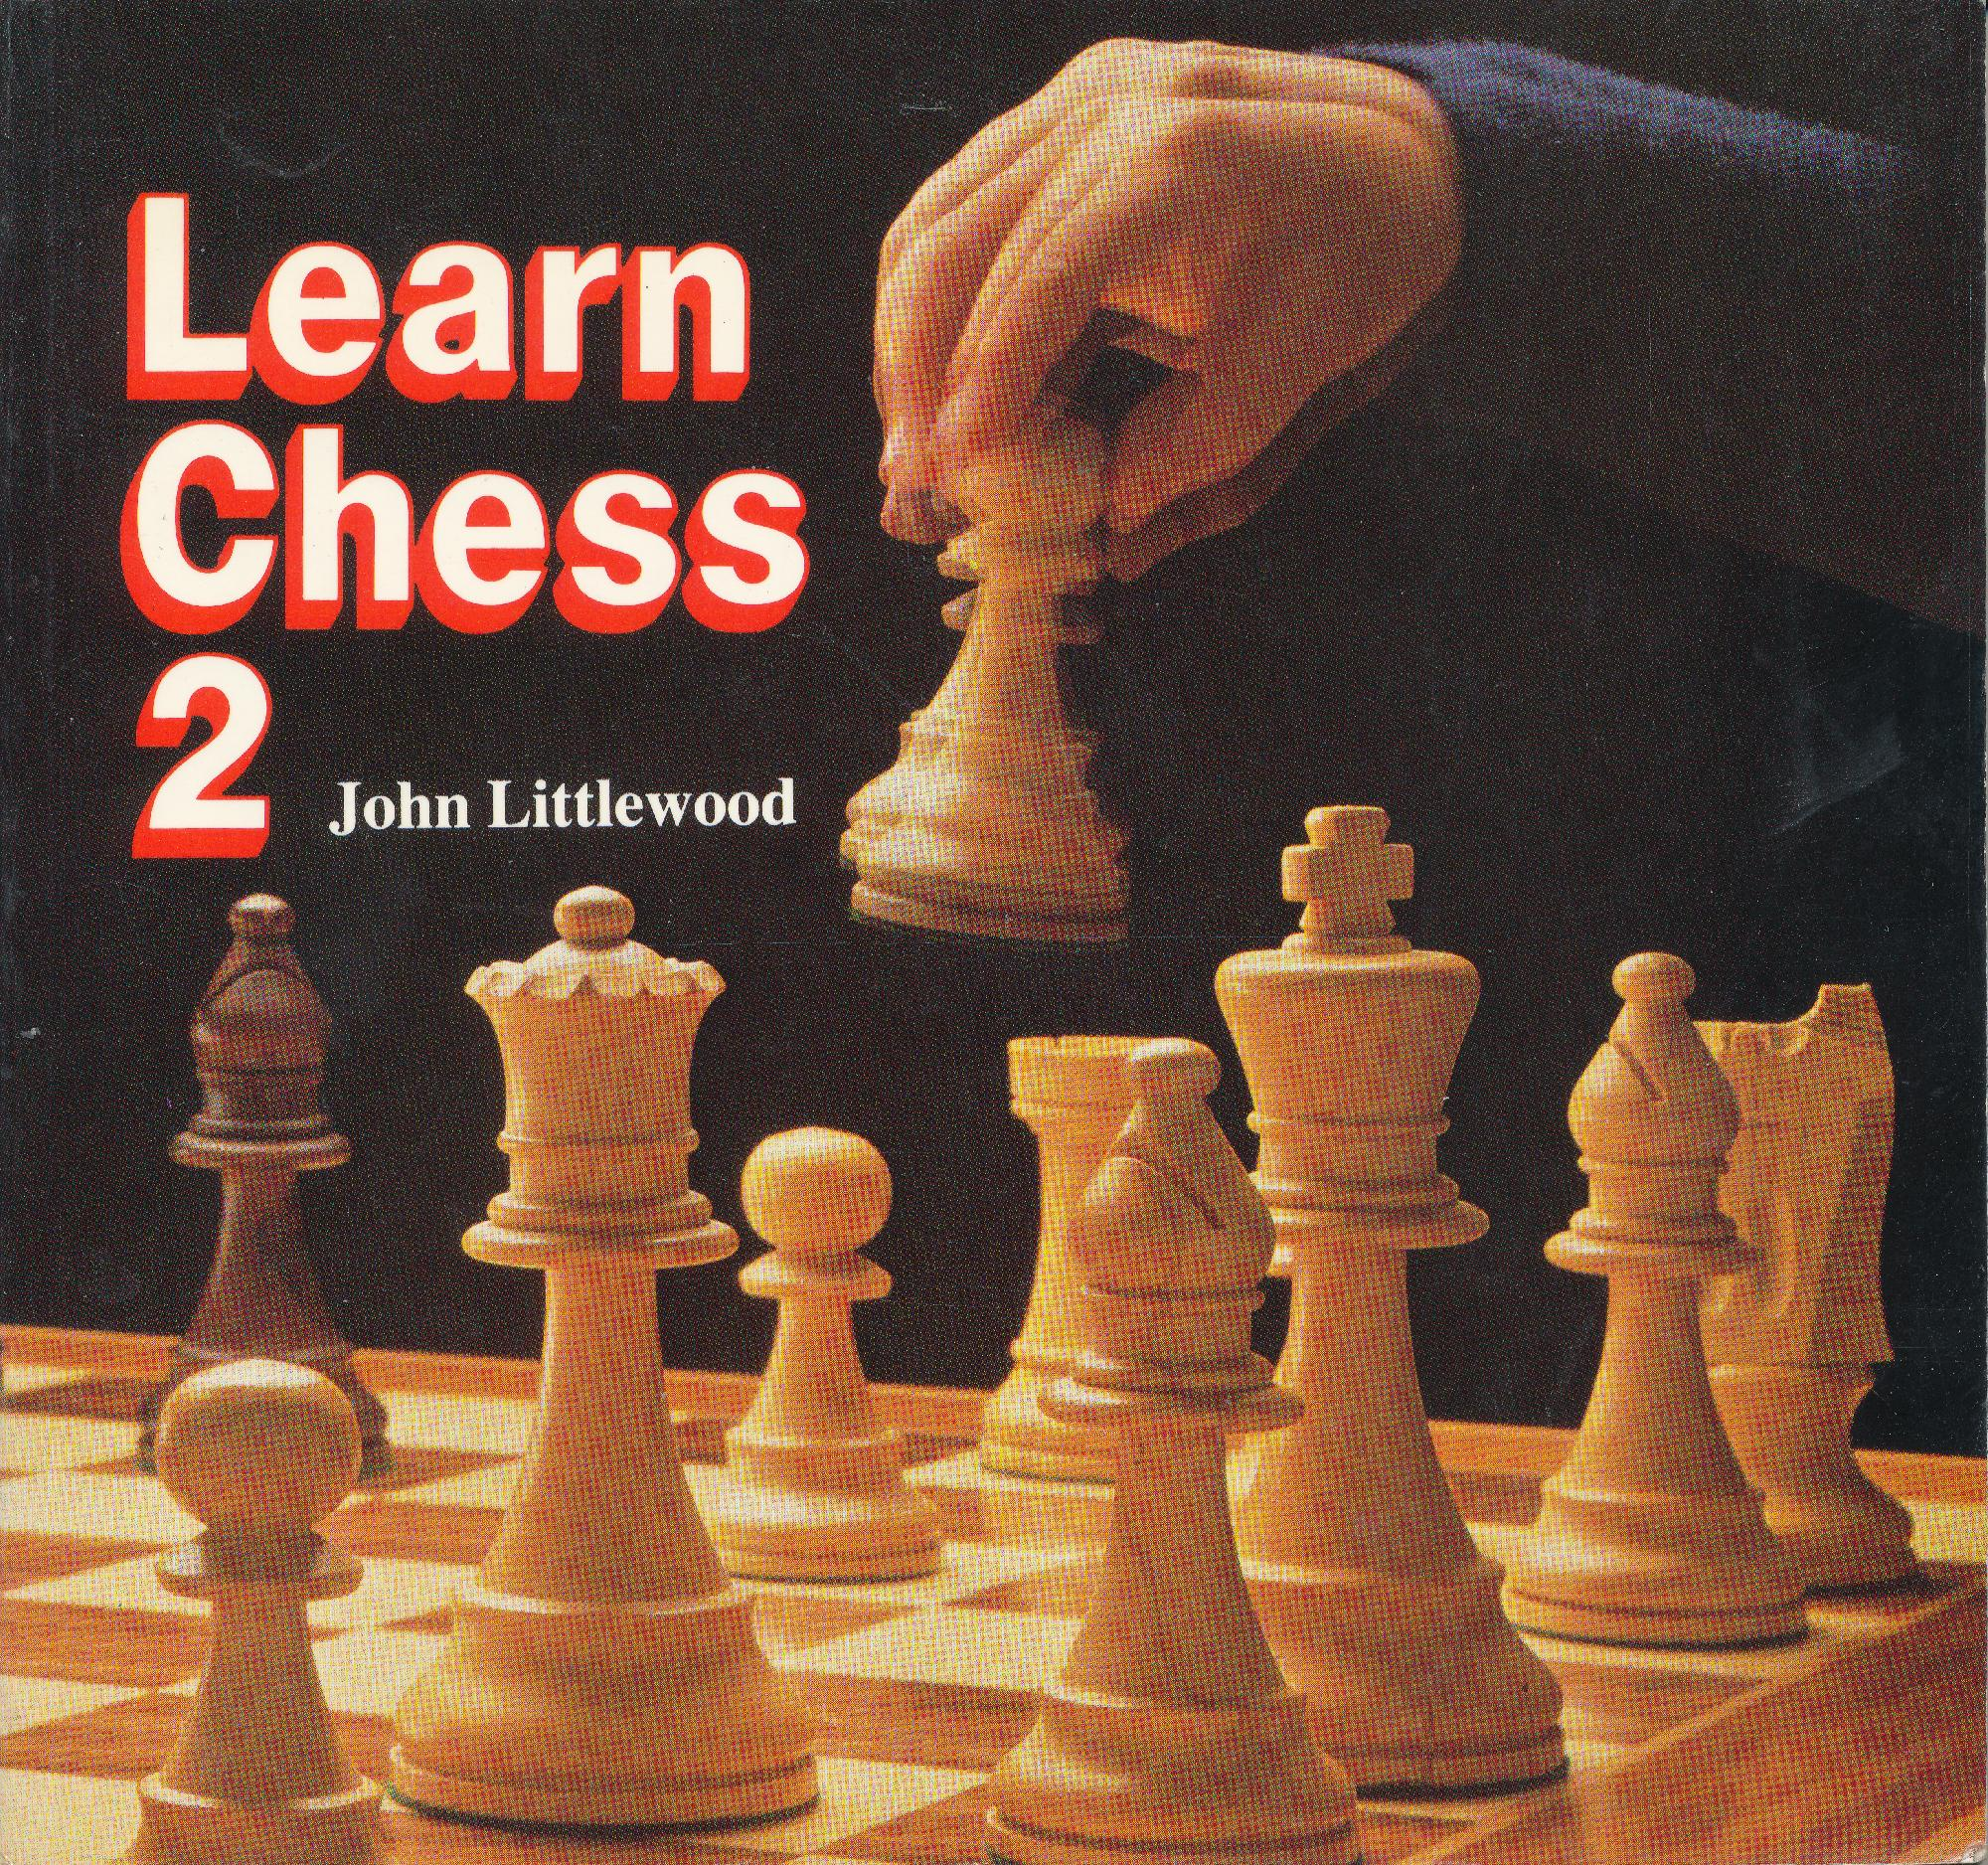 Learn Chess 2 by John Littlewood, Adam & Charles Black, 1984